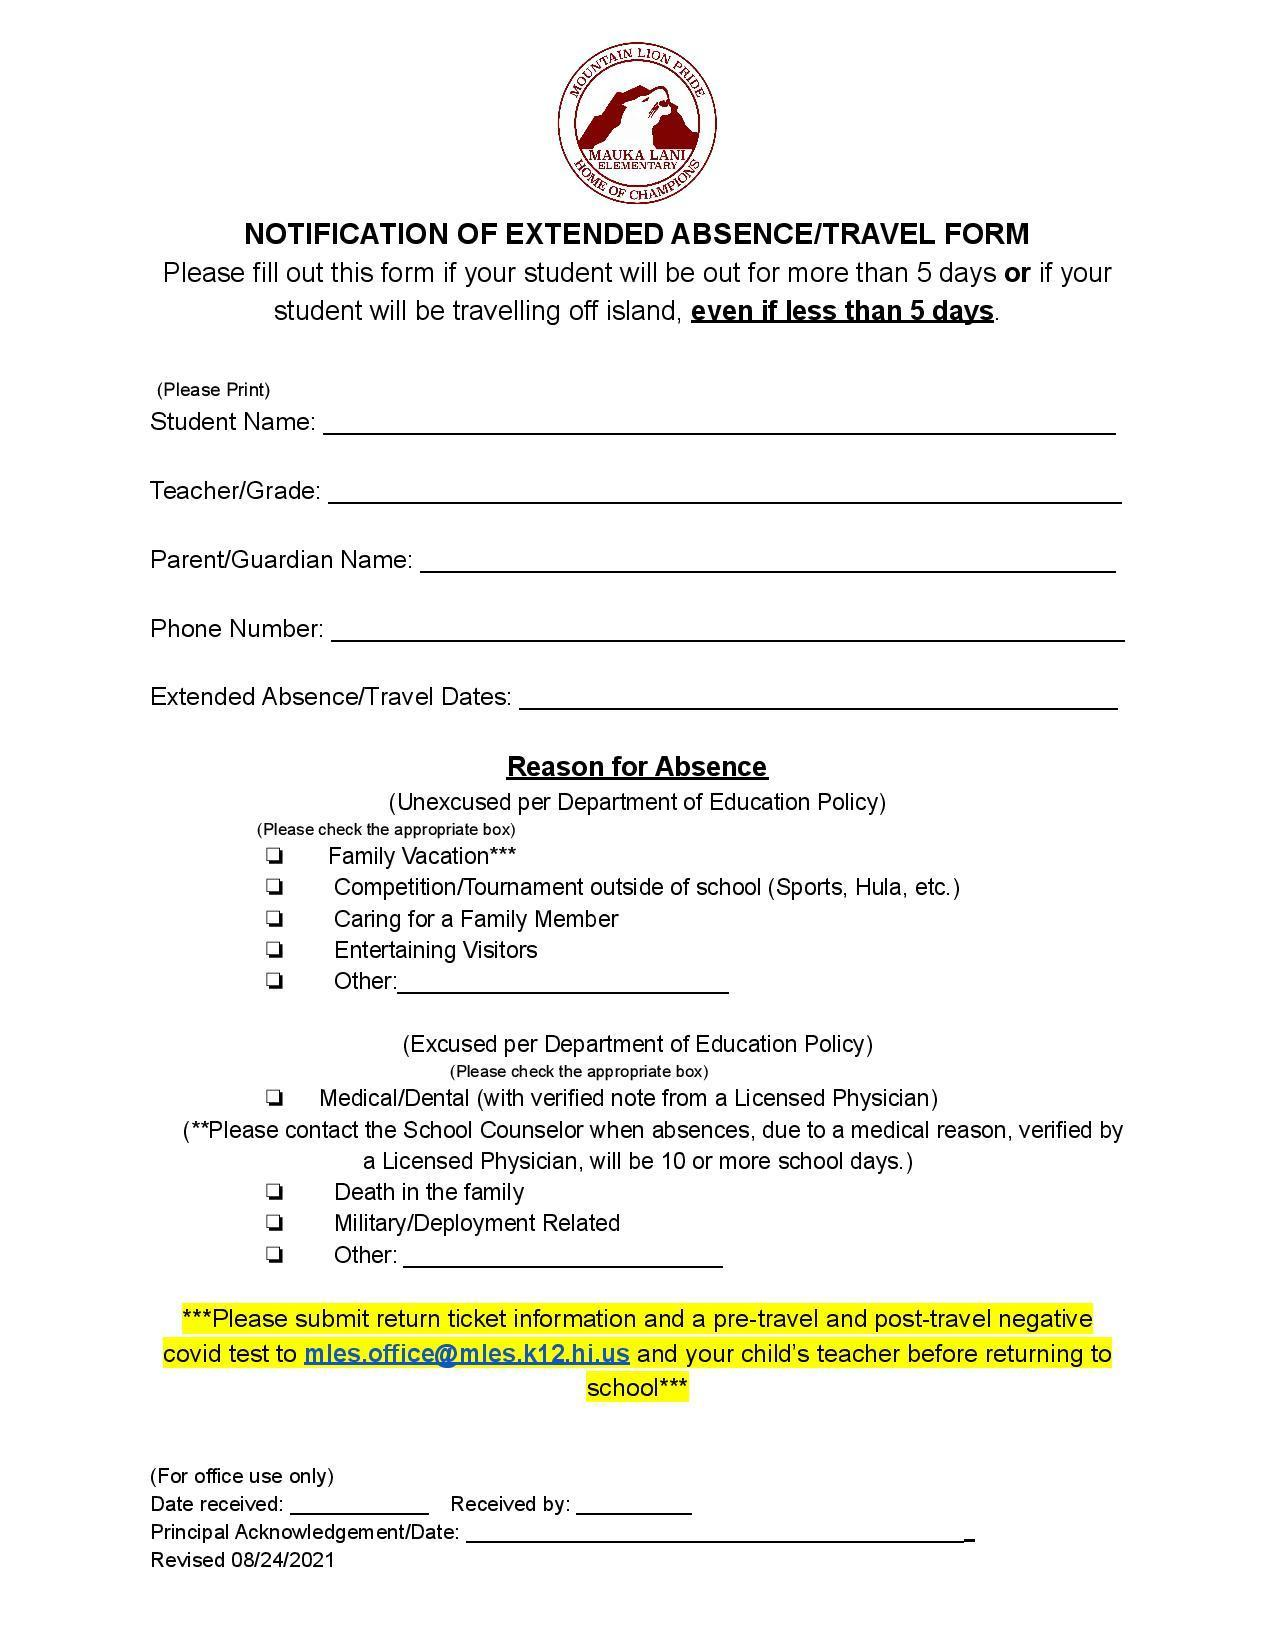 Notification of Extended Absence